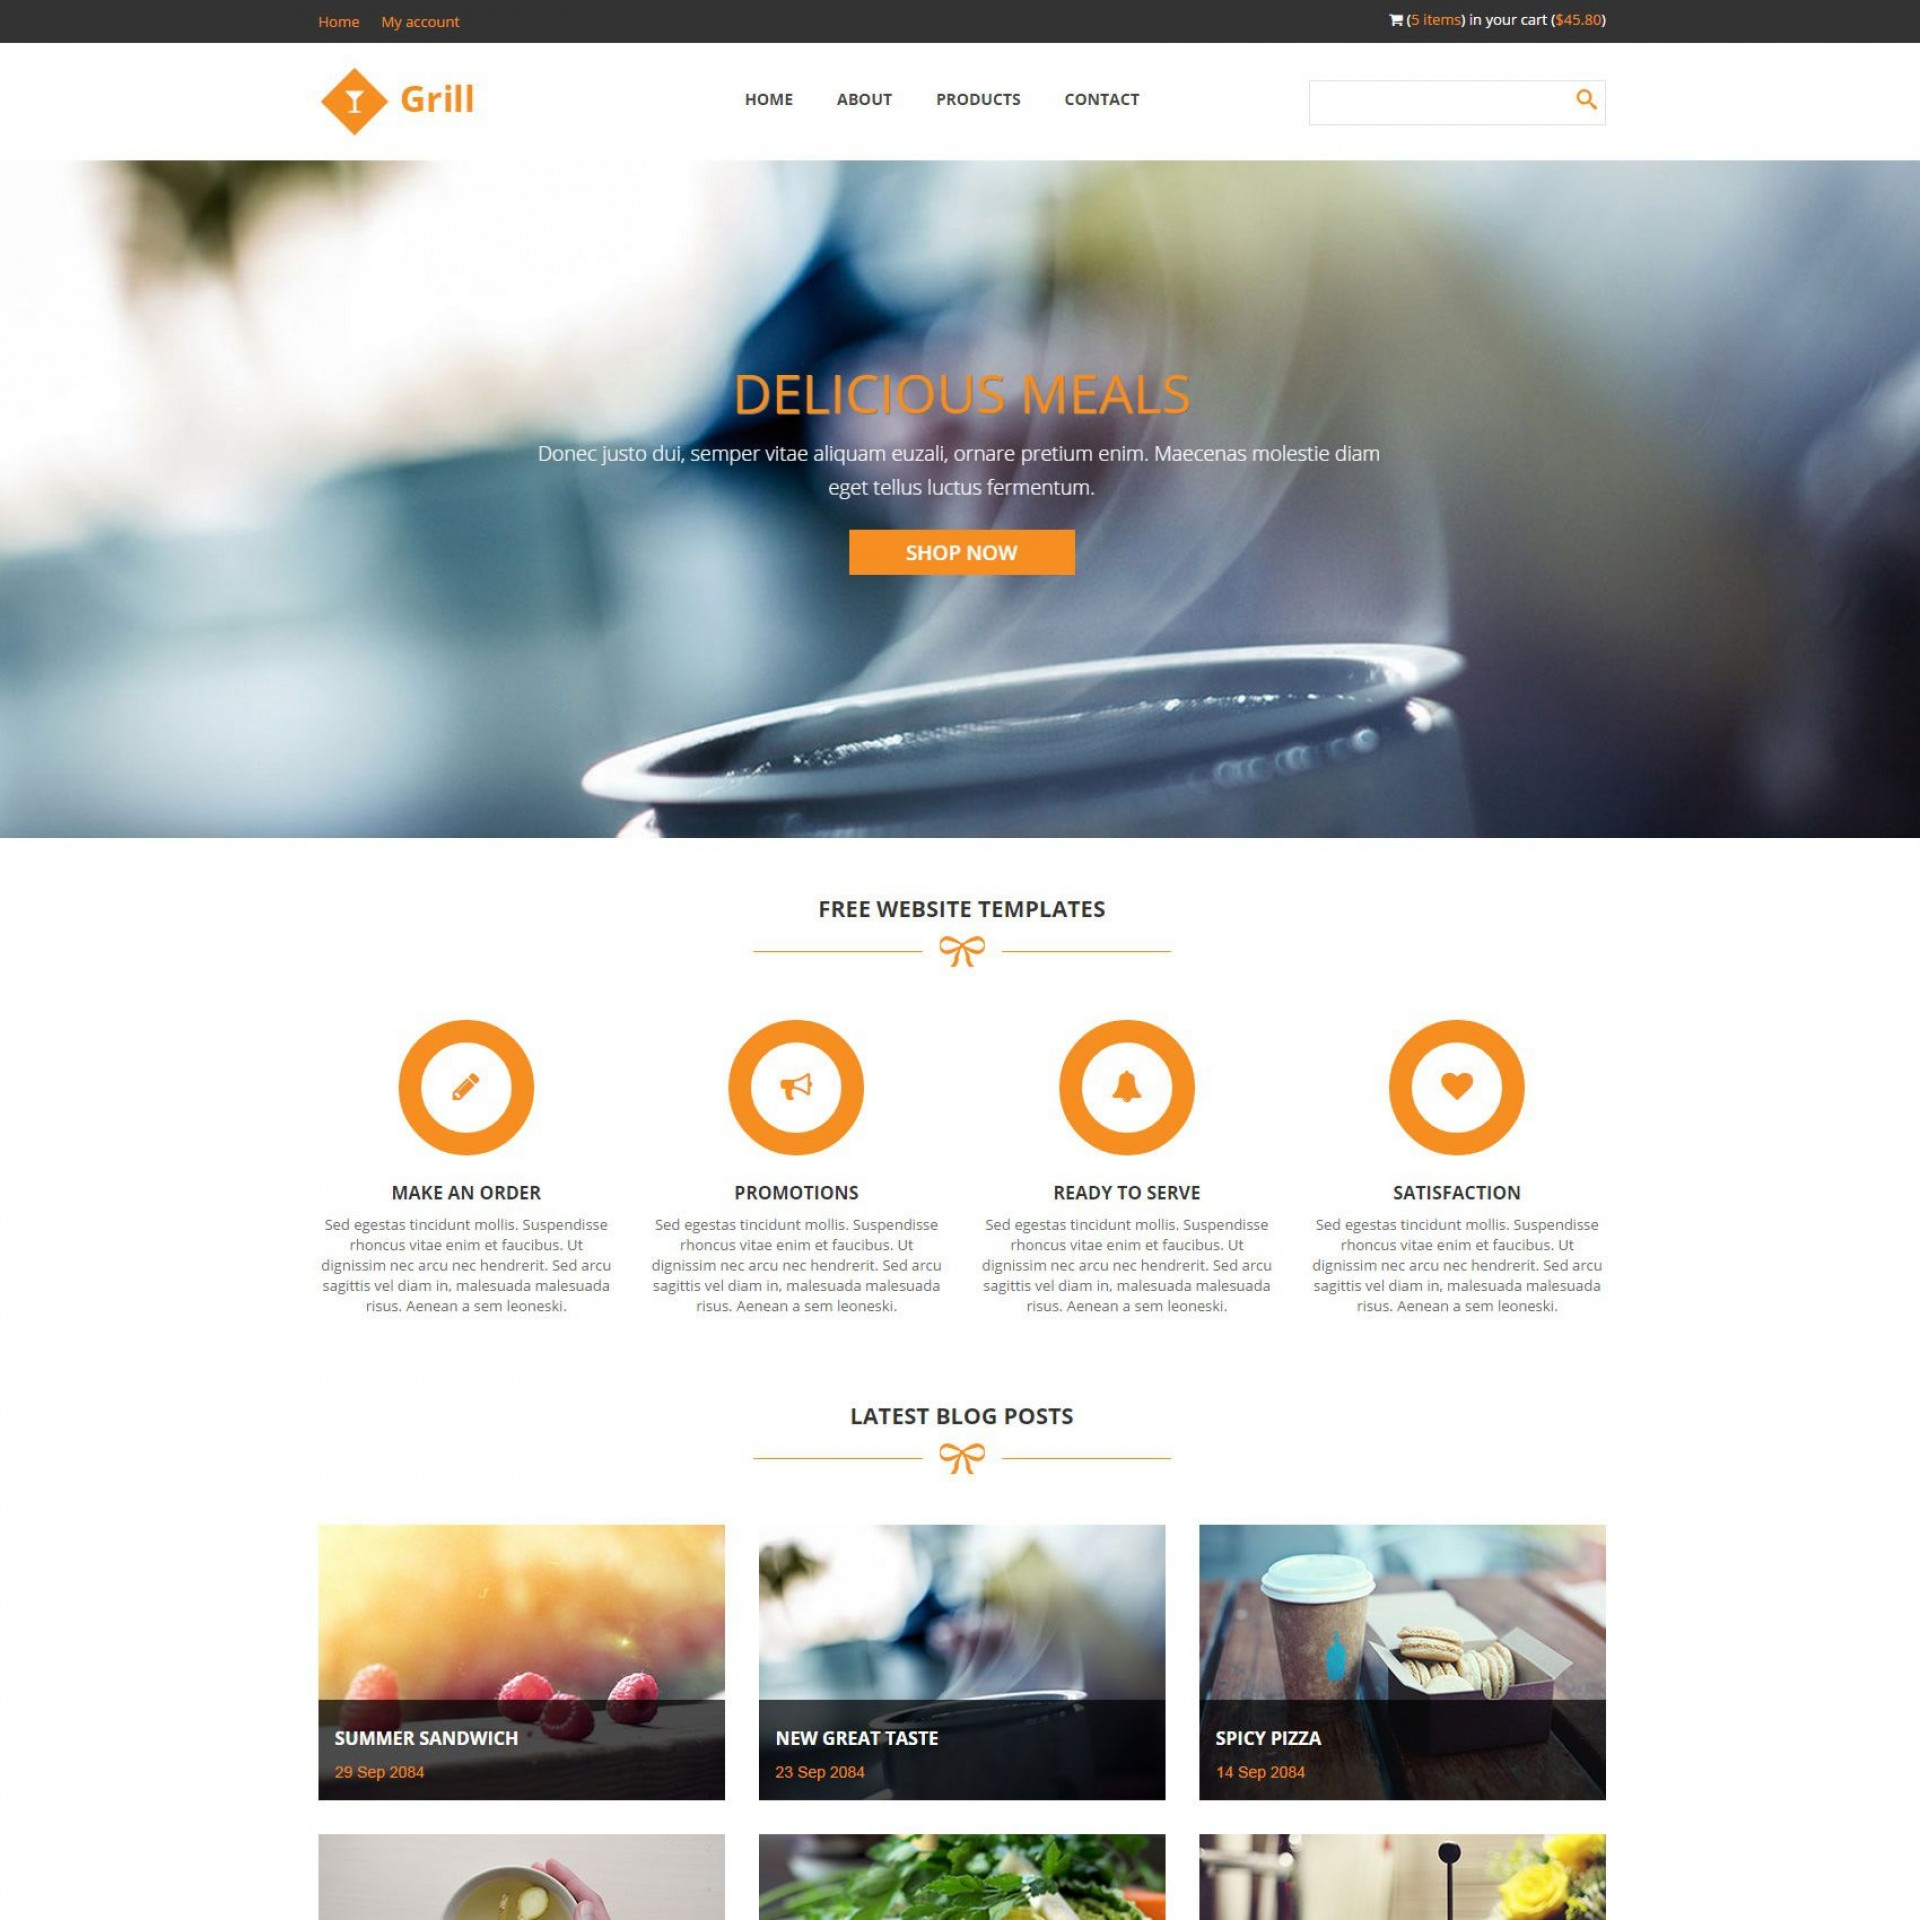 009 Rare Free Responsive Html5 Template High Def  Download For School Bootstrap Website1920